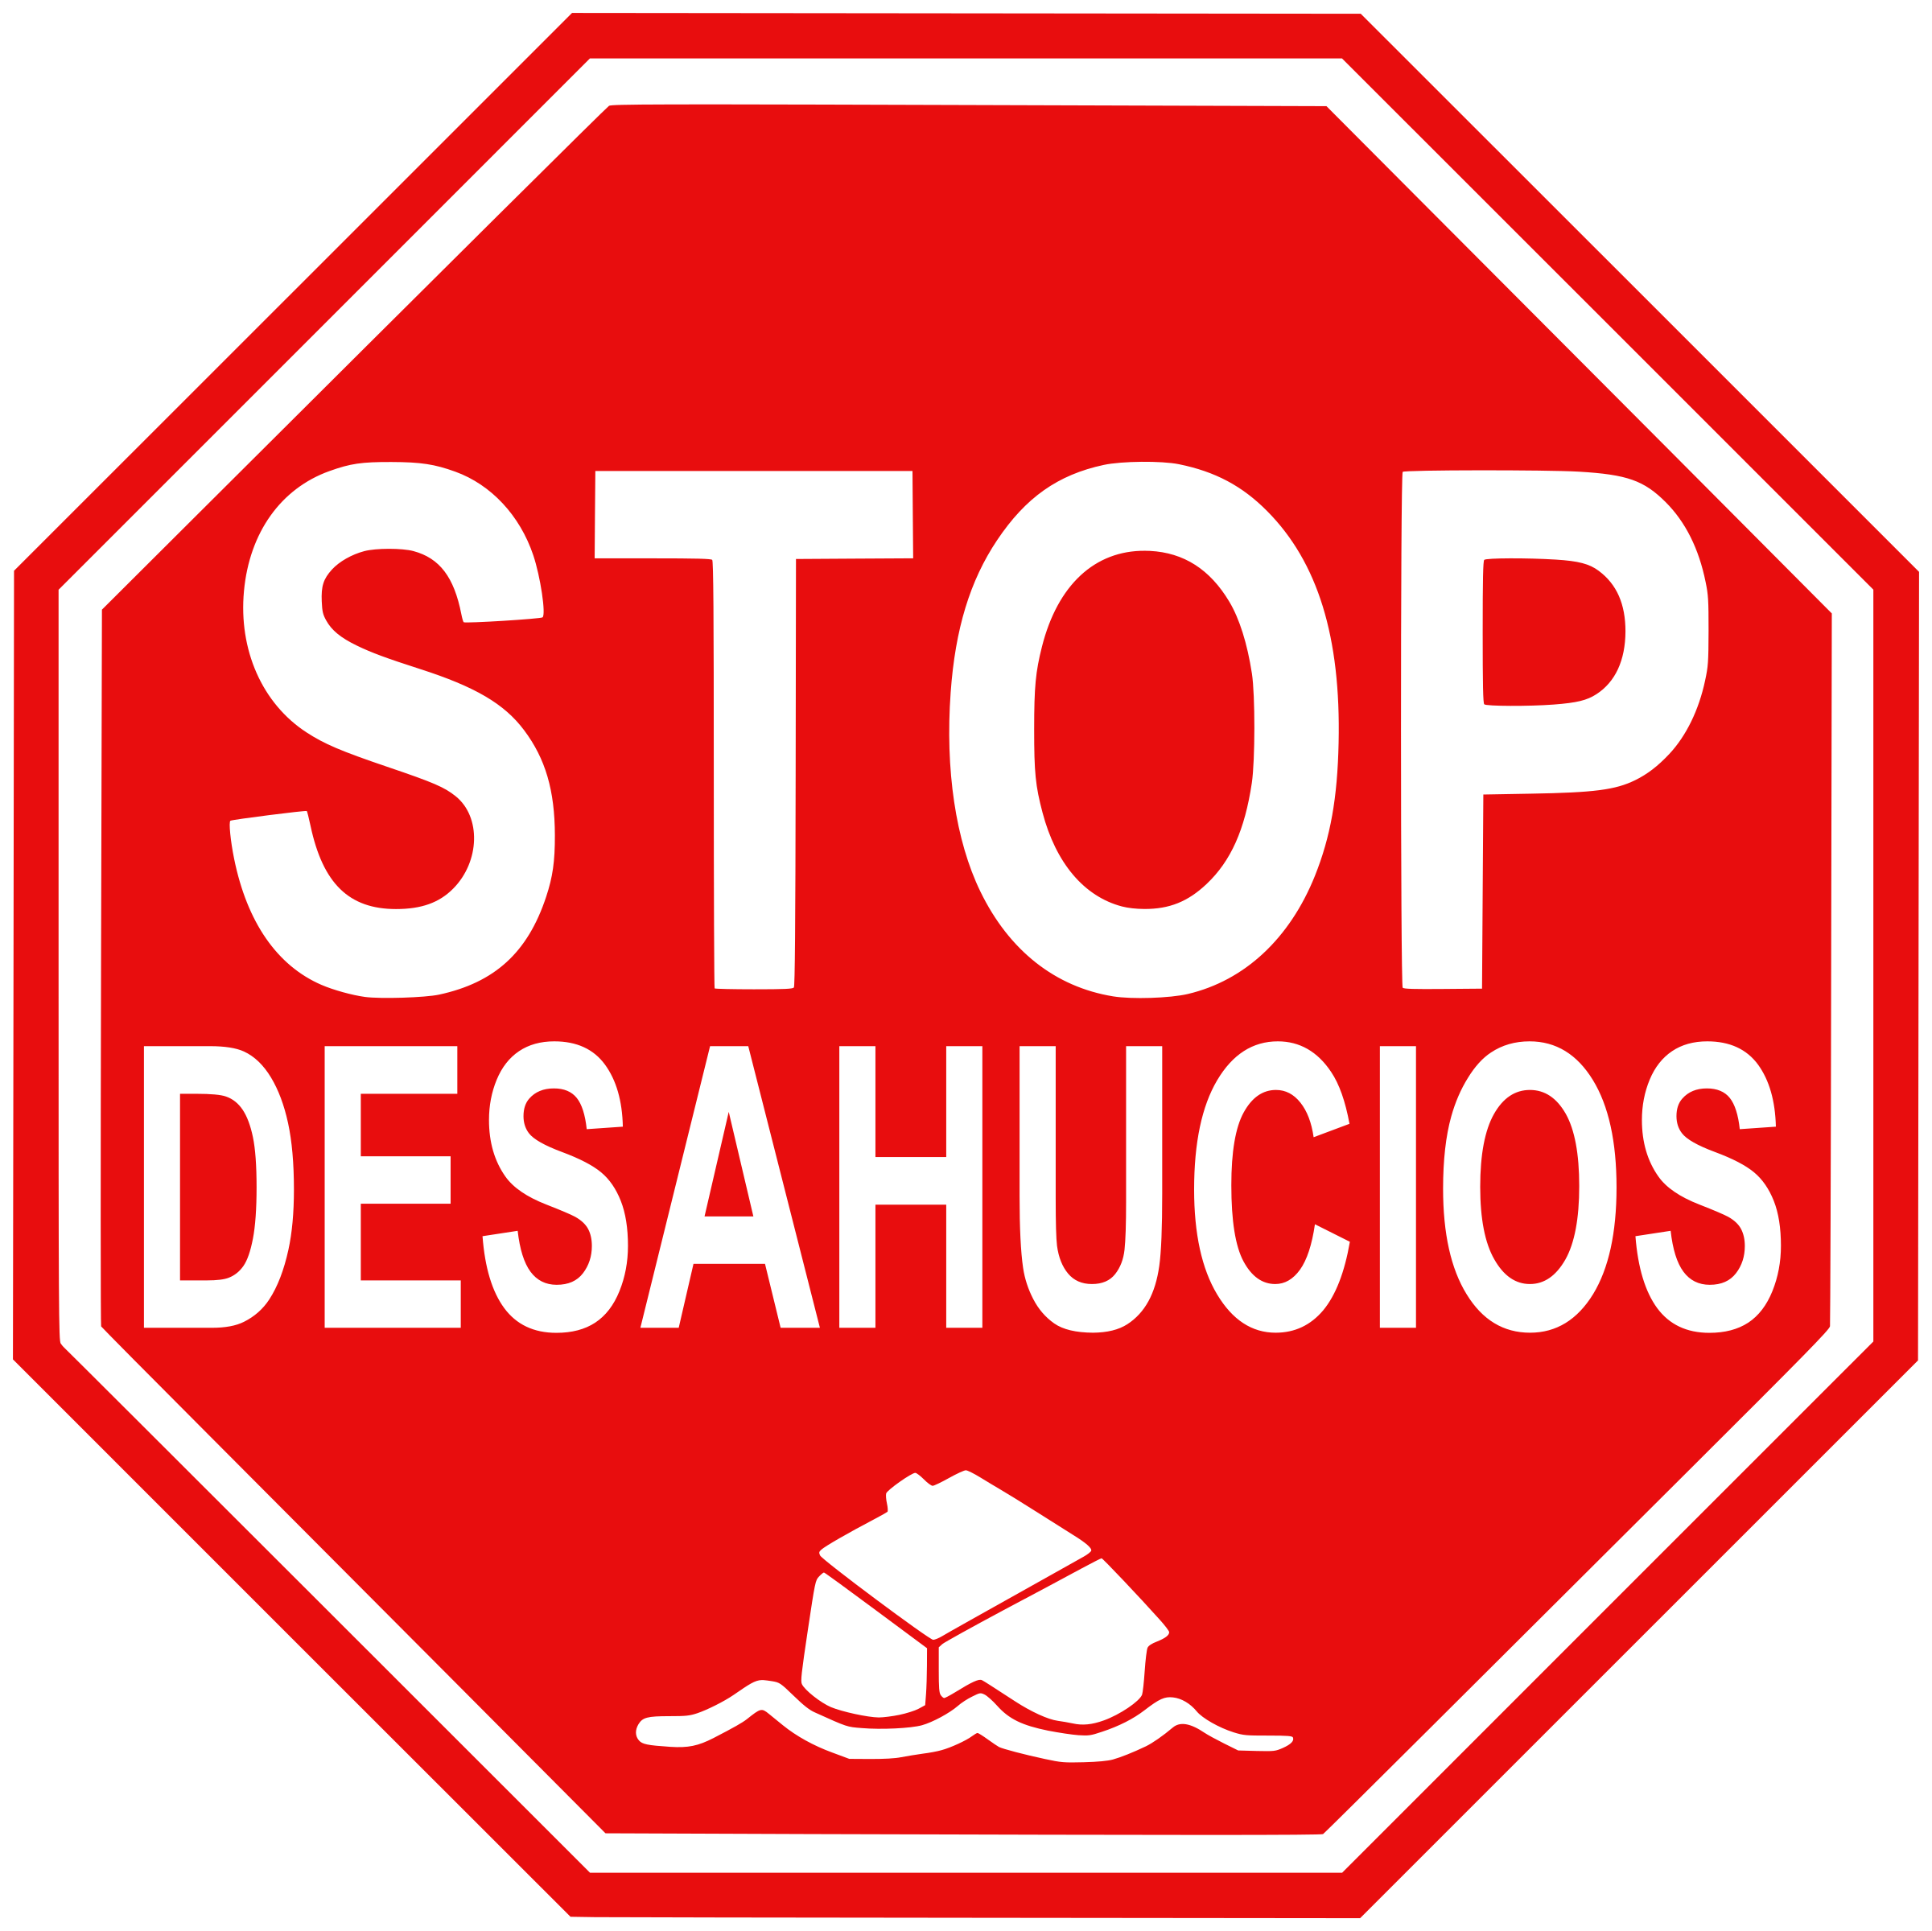 stop desahucios by fofo